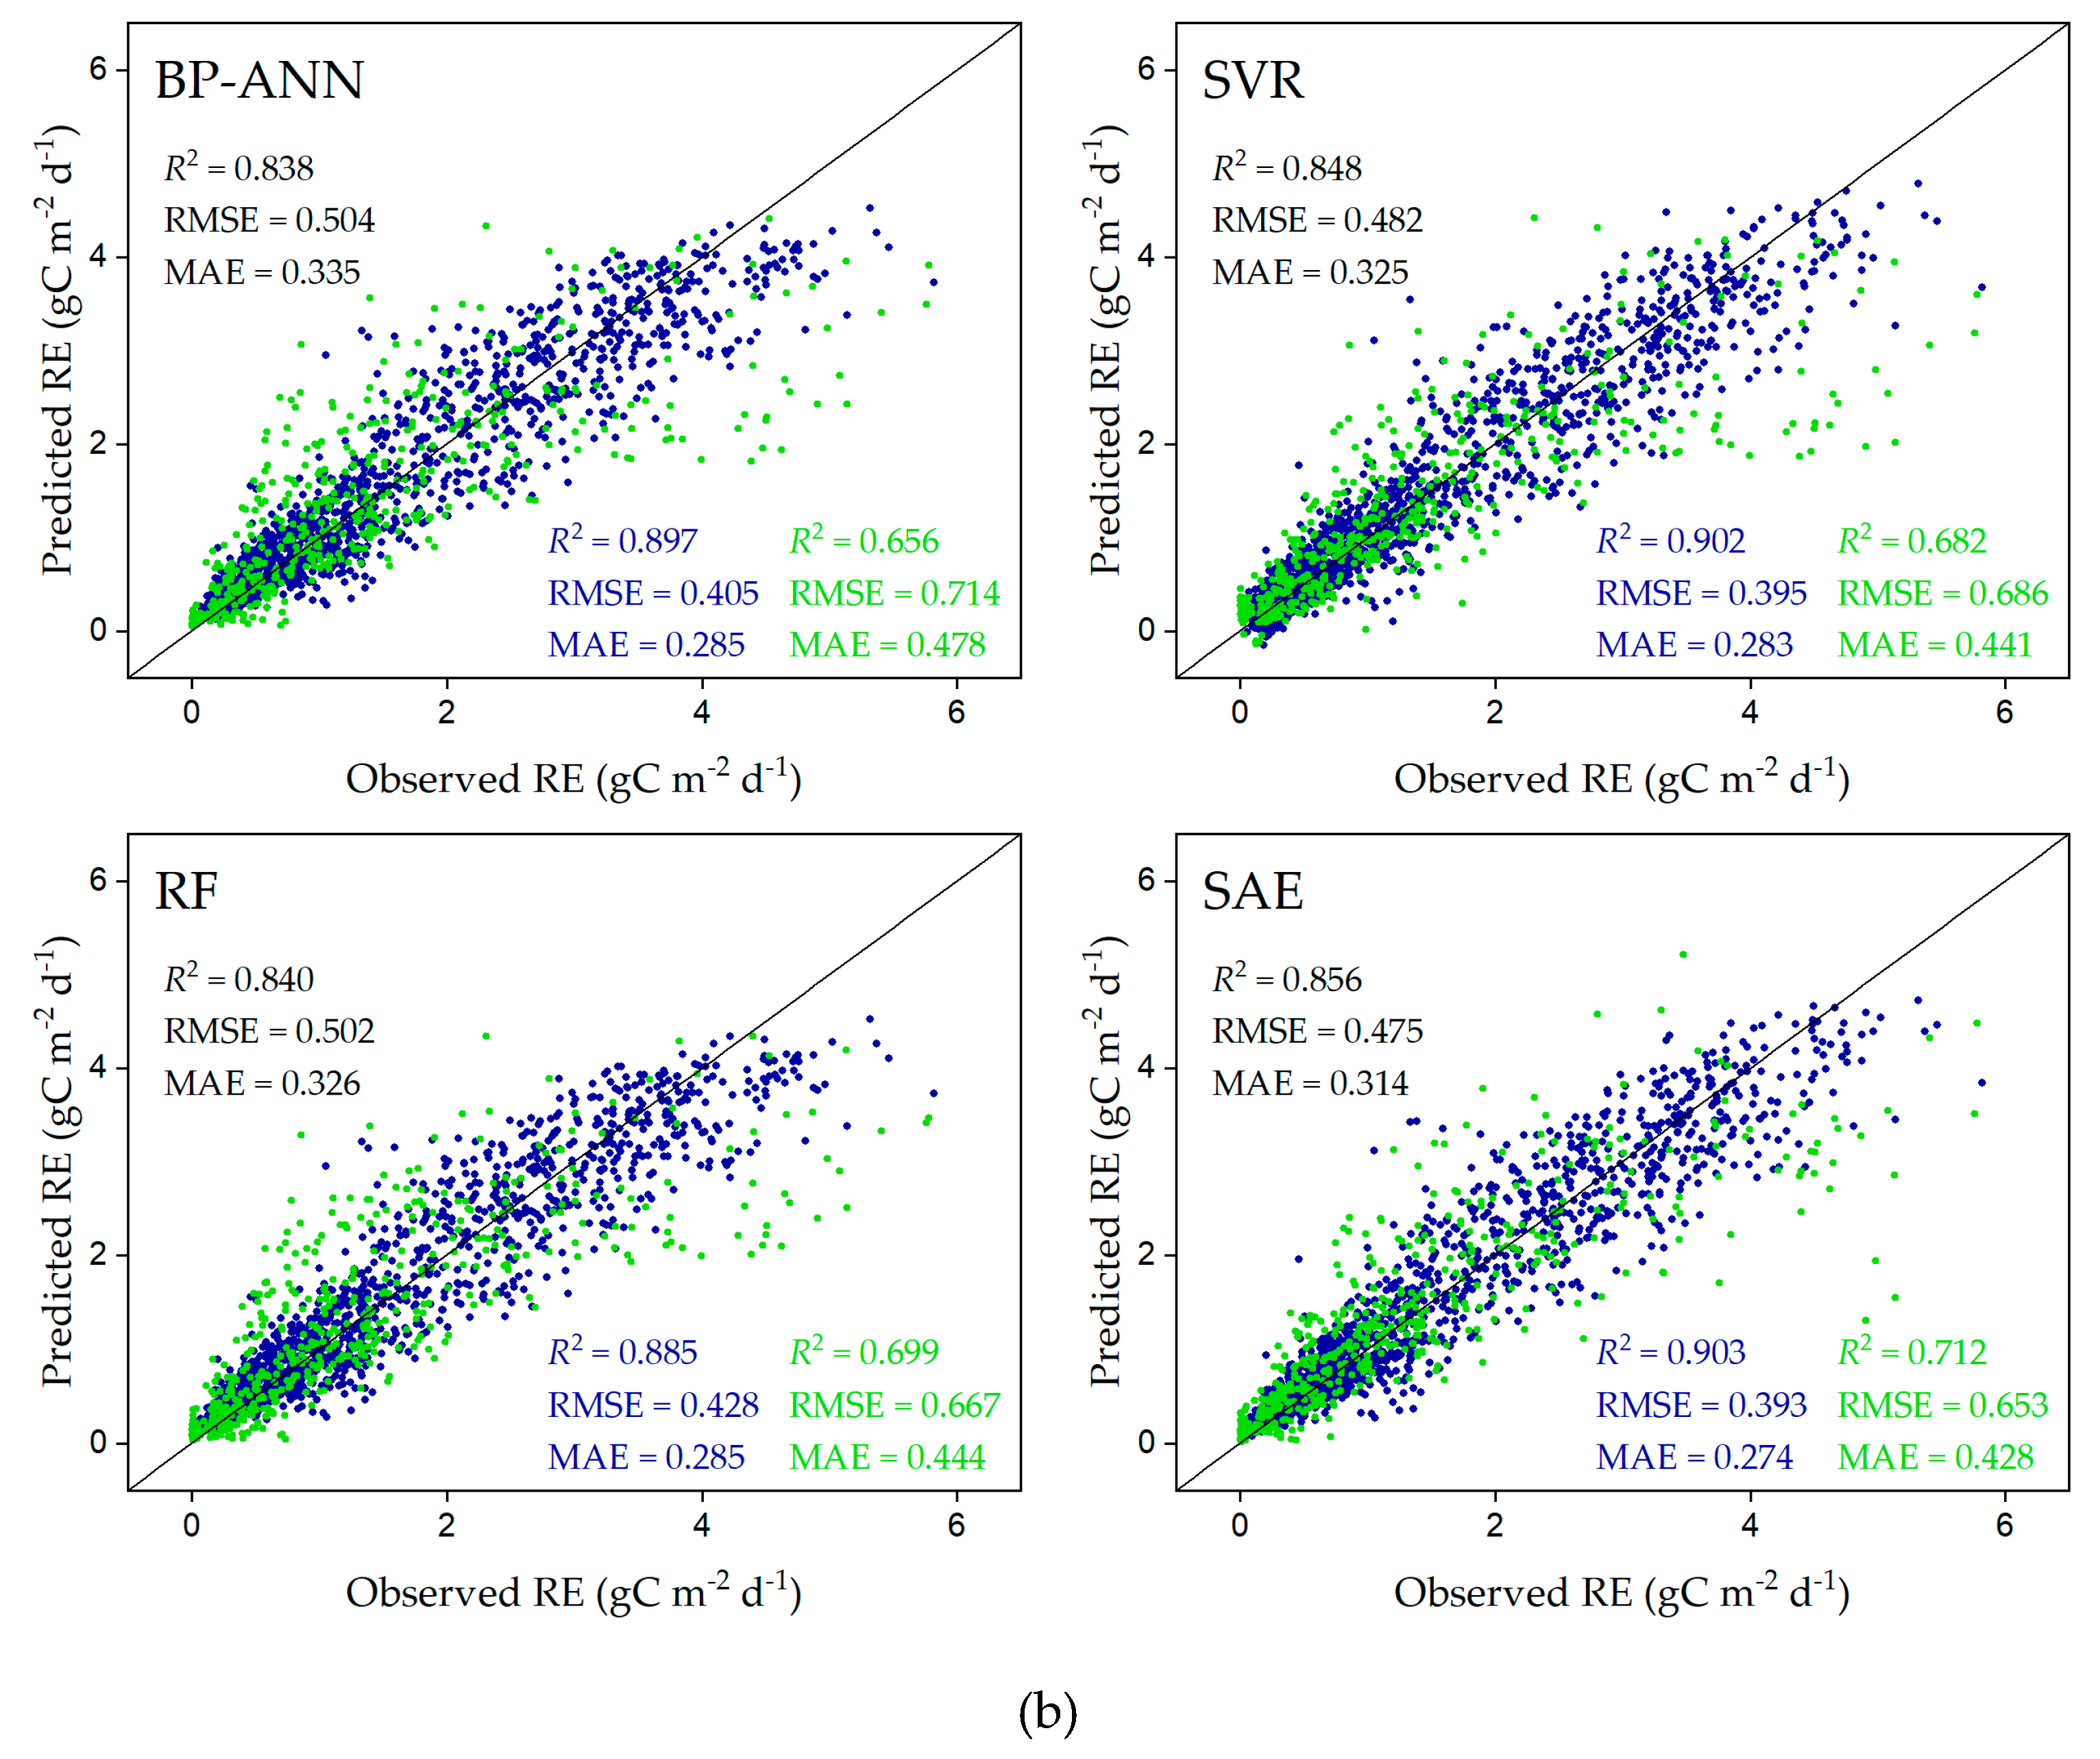 Sustainability Free Full Text Estimating Ecosystem Respiration In The Grasslands Of Northern China Using Machine Learning Model Evaluation And Comparison Html